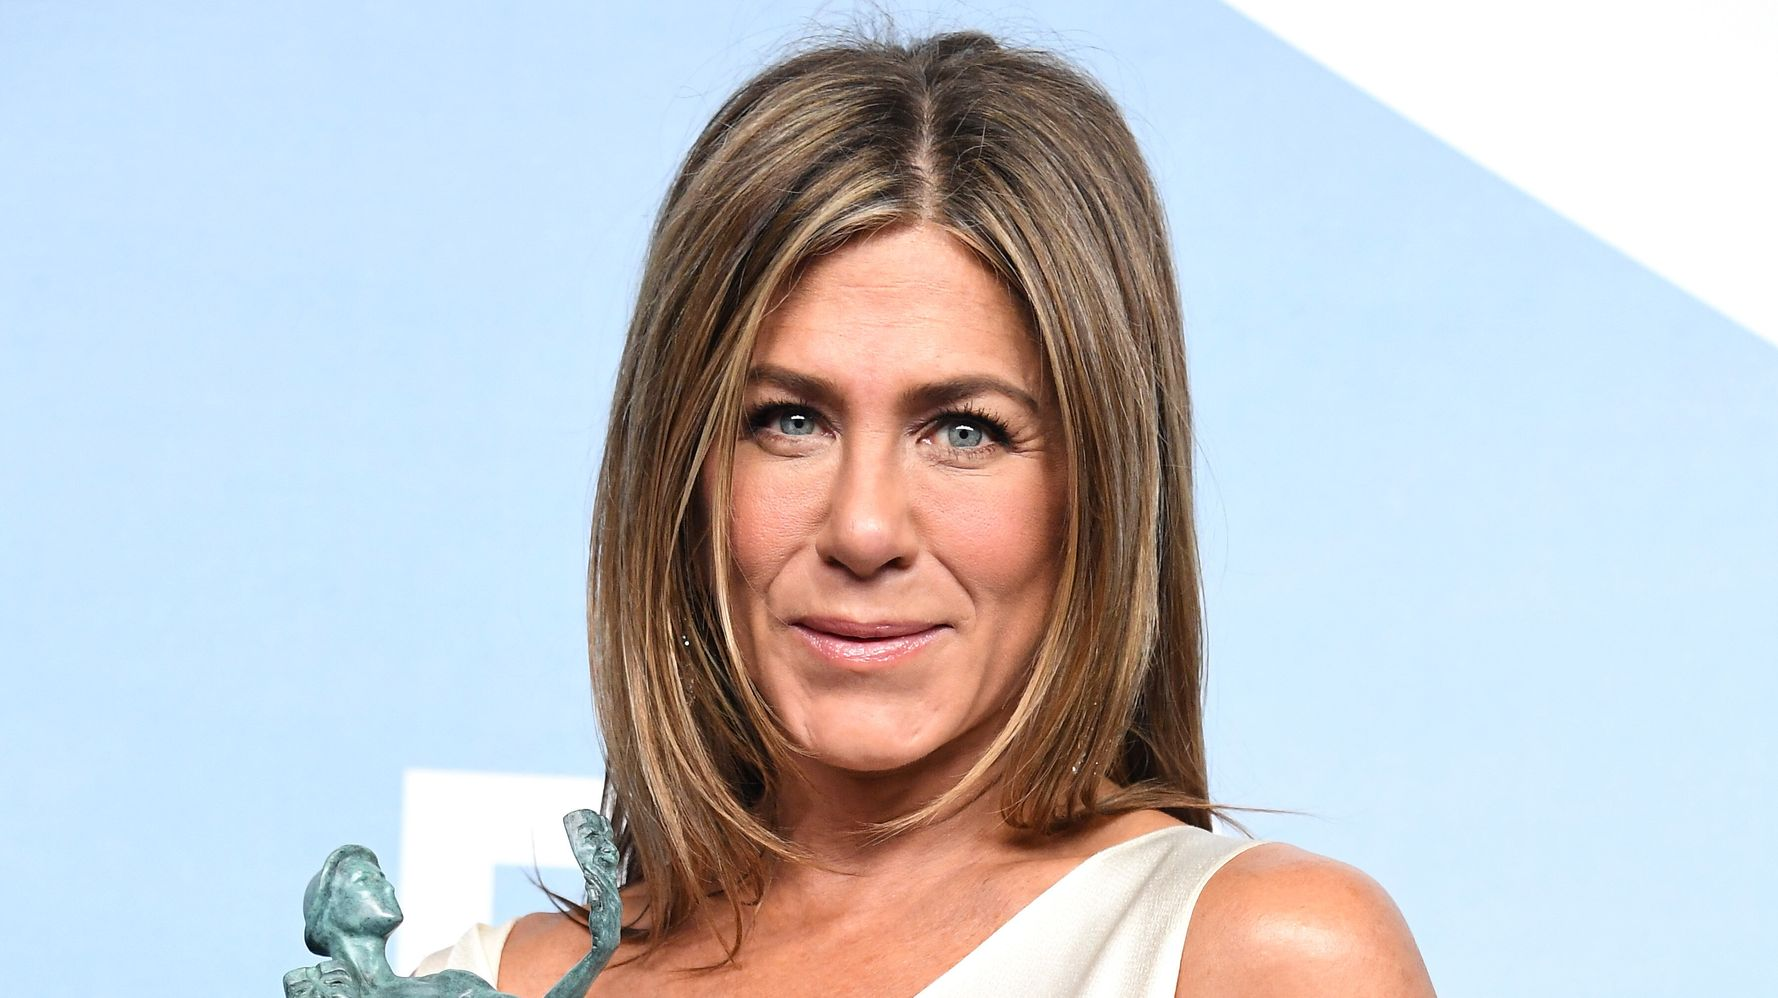 Jennifer Aniston Heard The Rumor About Dating David Schwimmer In The Most 'Friends' Way